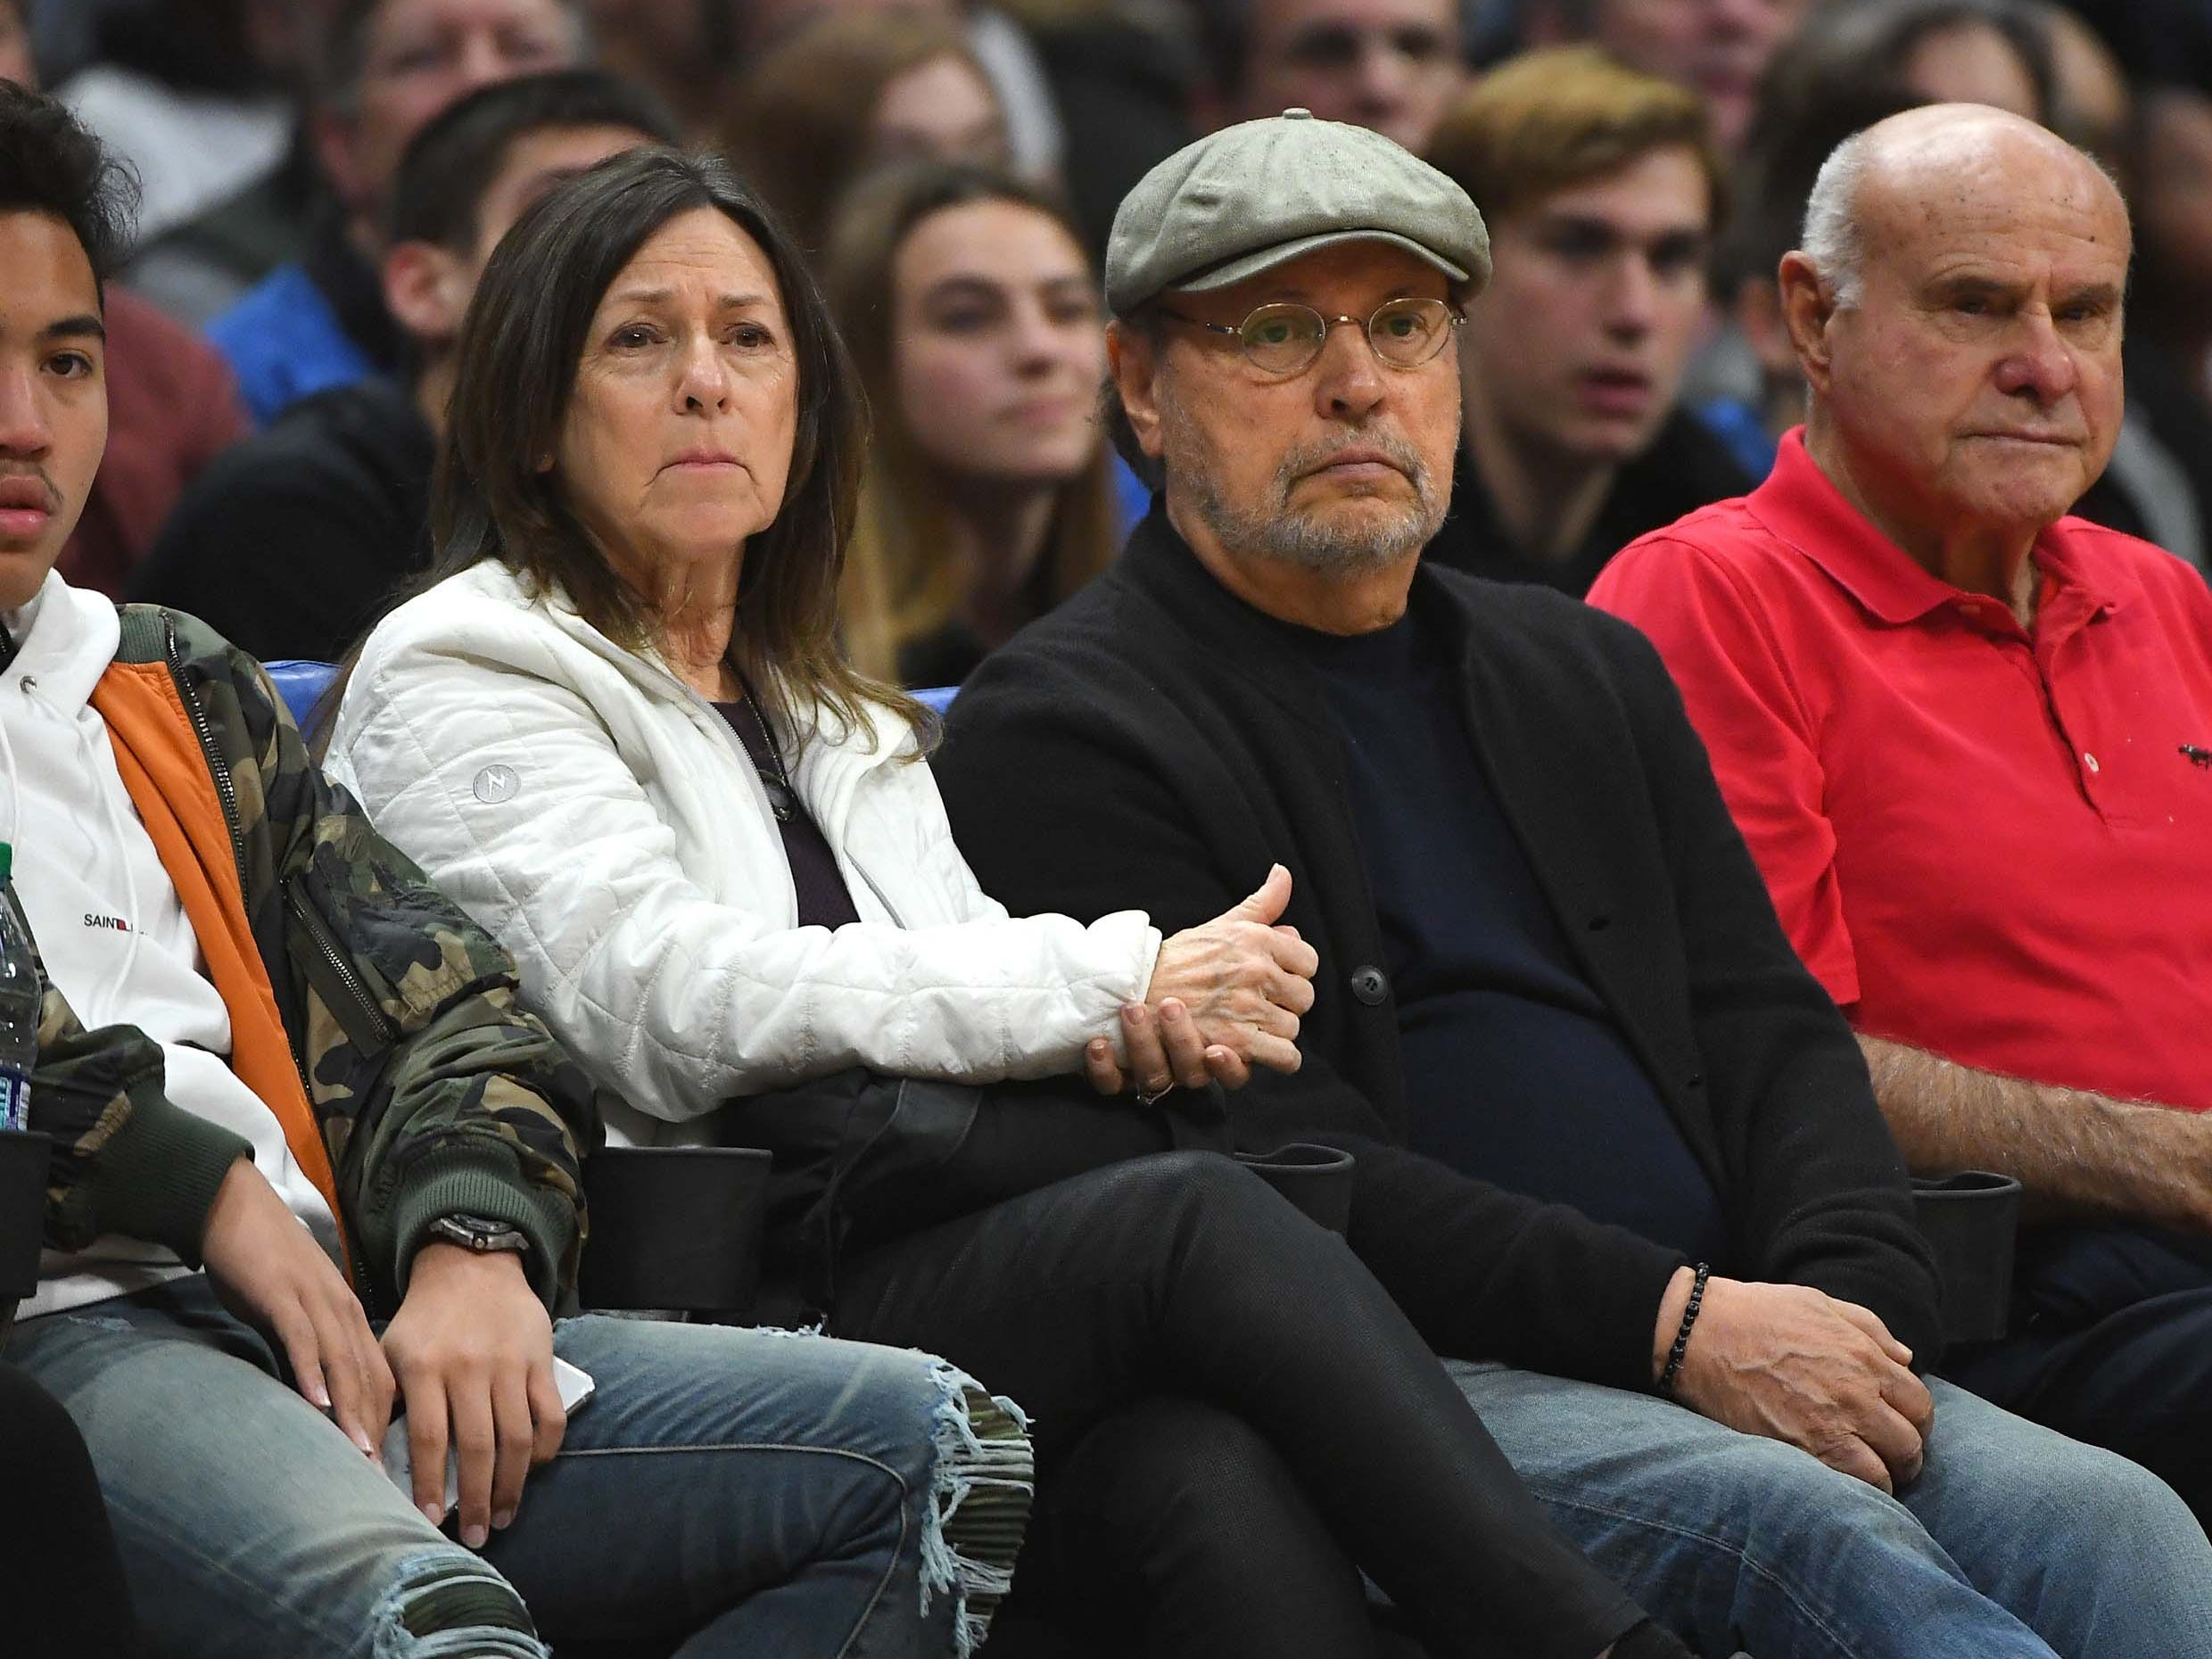 Jan. 6: Entertainer Billy Crystal and his wife Janice Crystal attend the game between the Los Angeles Clippers and the Orlando Magic at Staples Center.